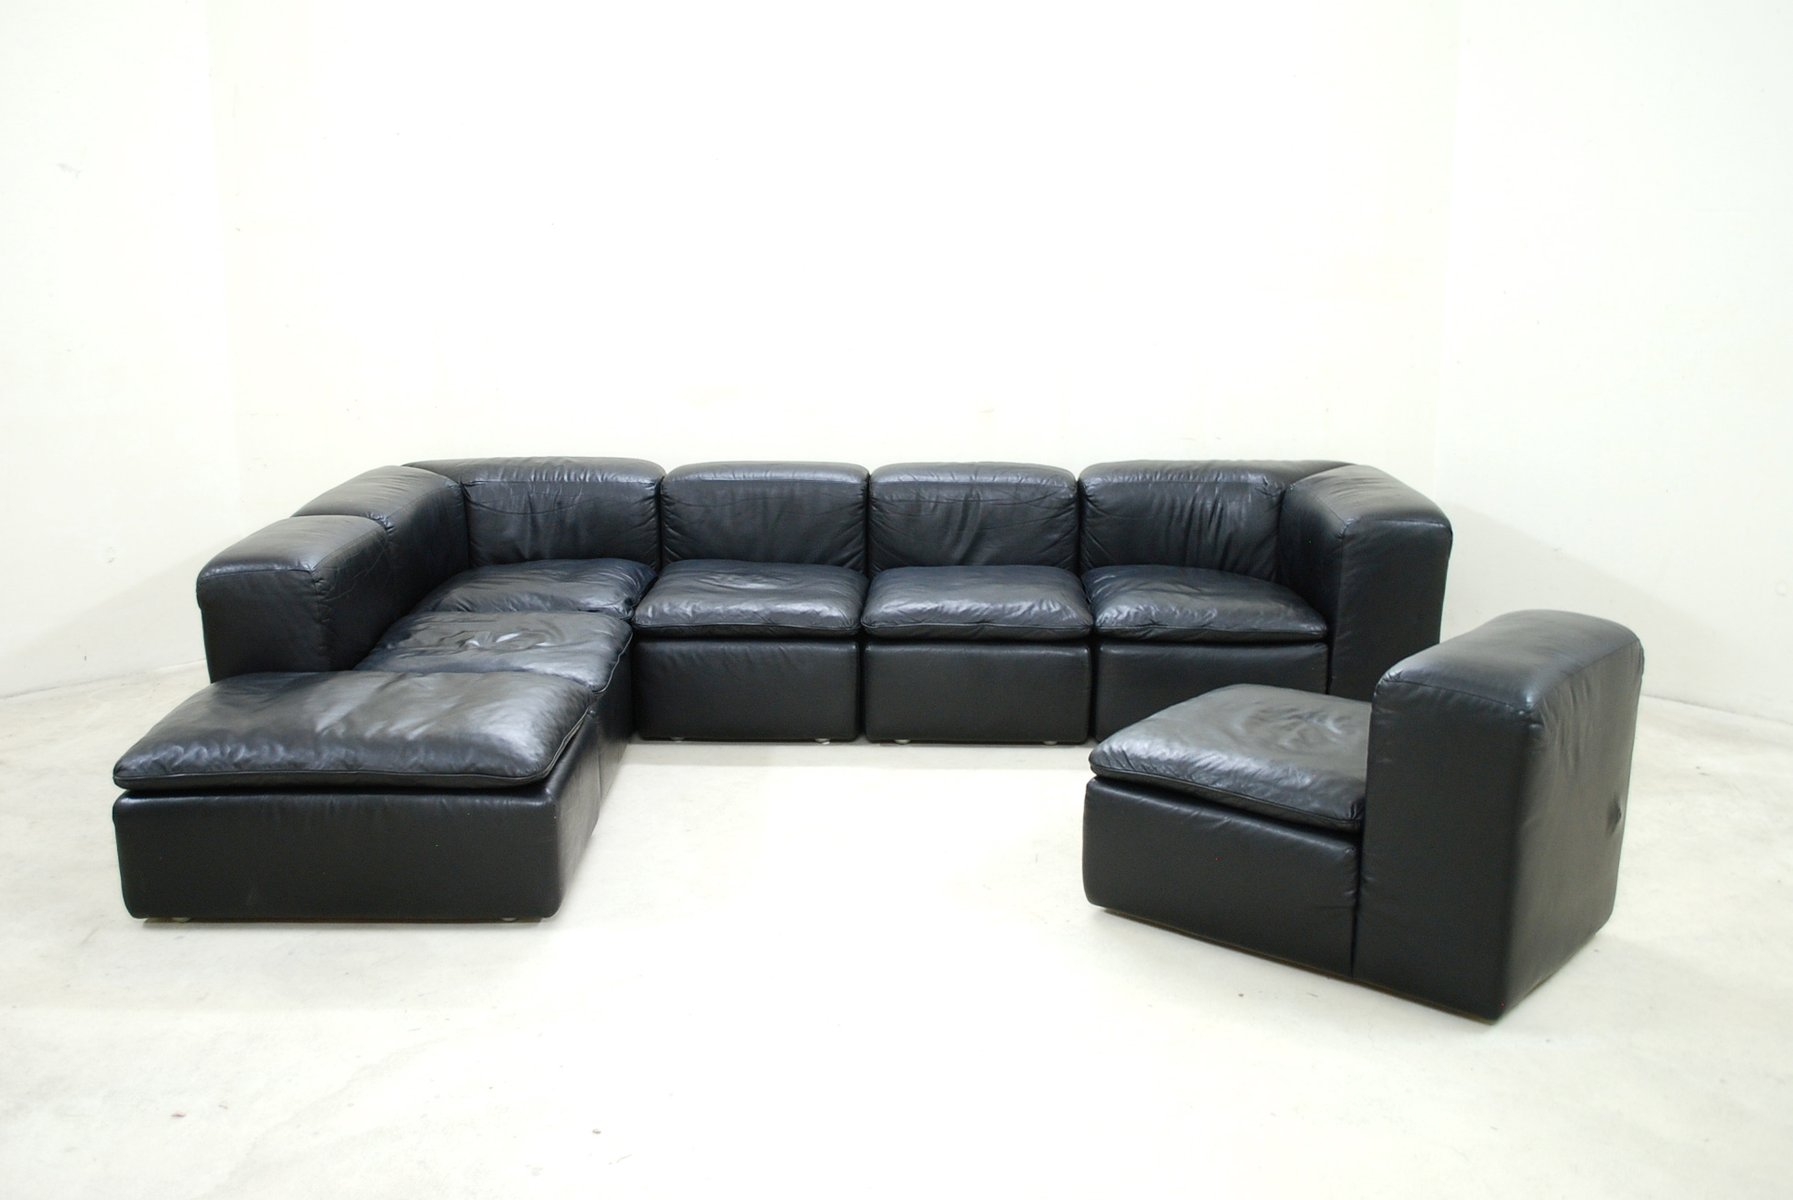 leather modular sofas bargains on closeout belice 3 pc leather modular sofa with thesofa. Black Bedroom Furniture Sets. Home Design Ideas